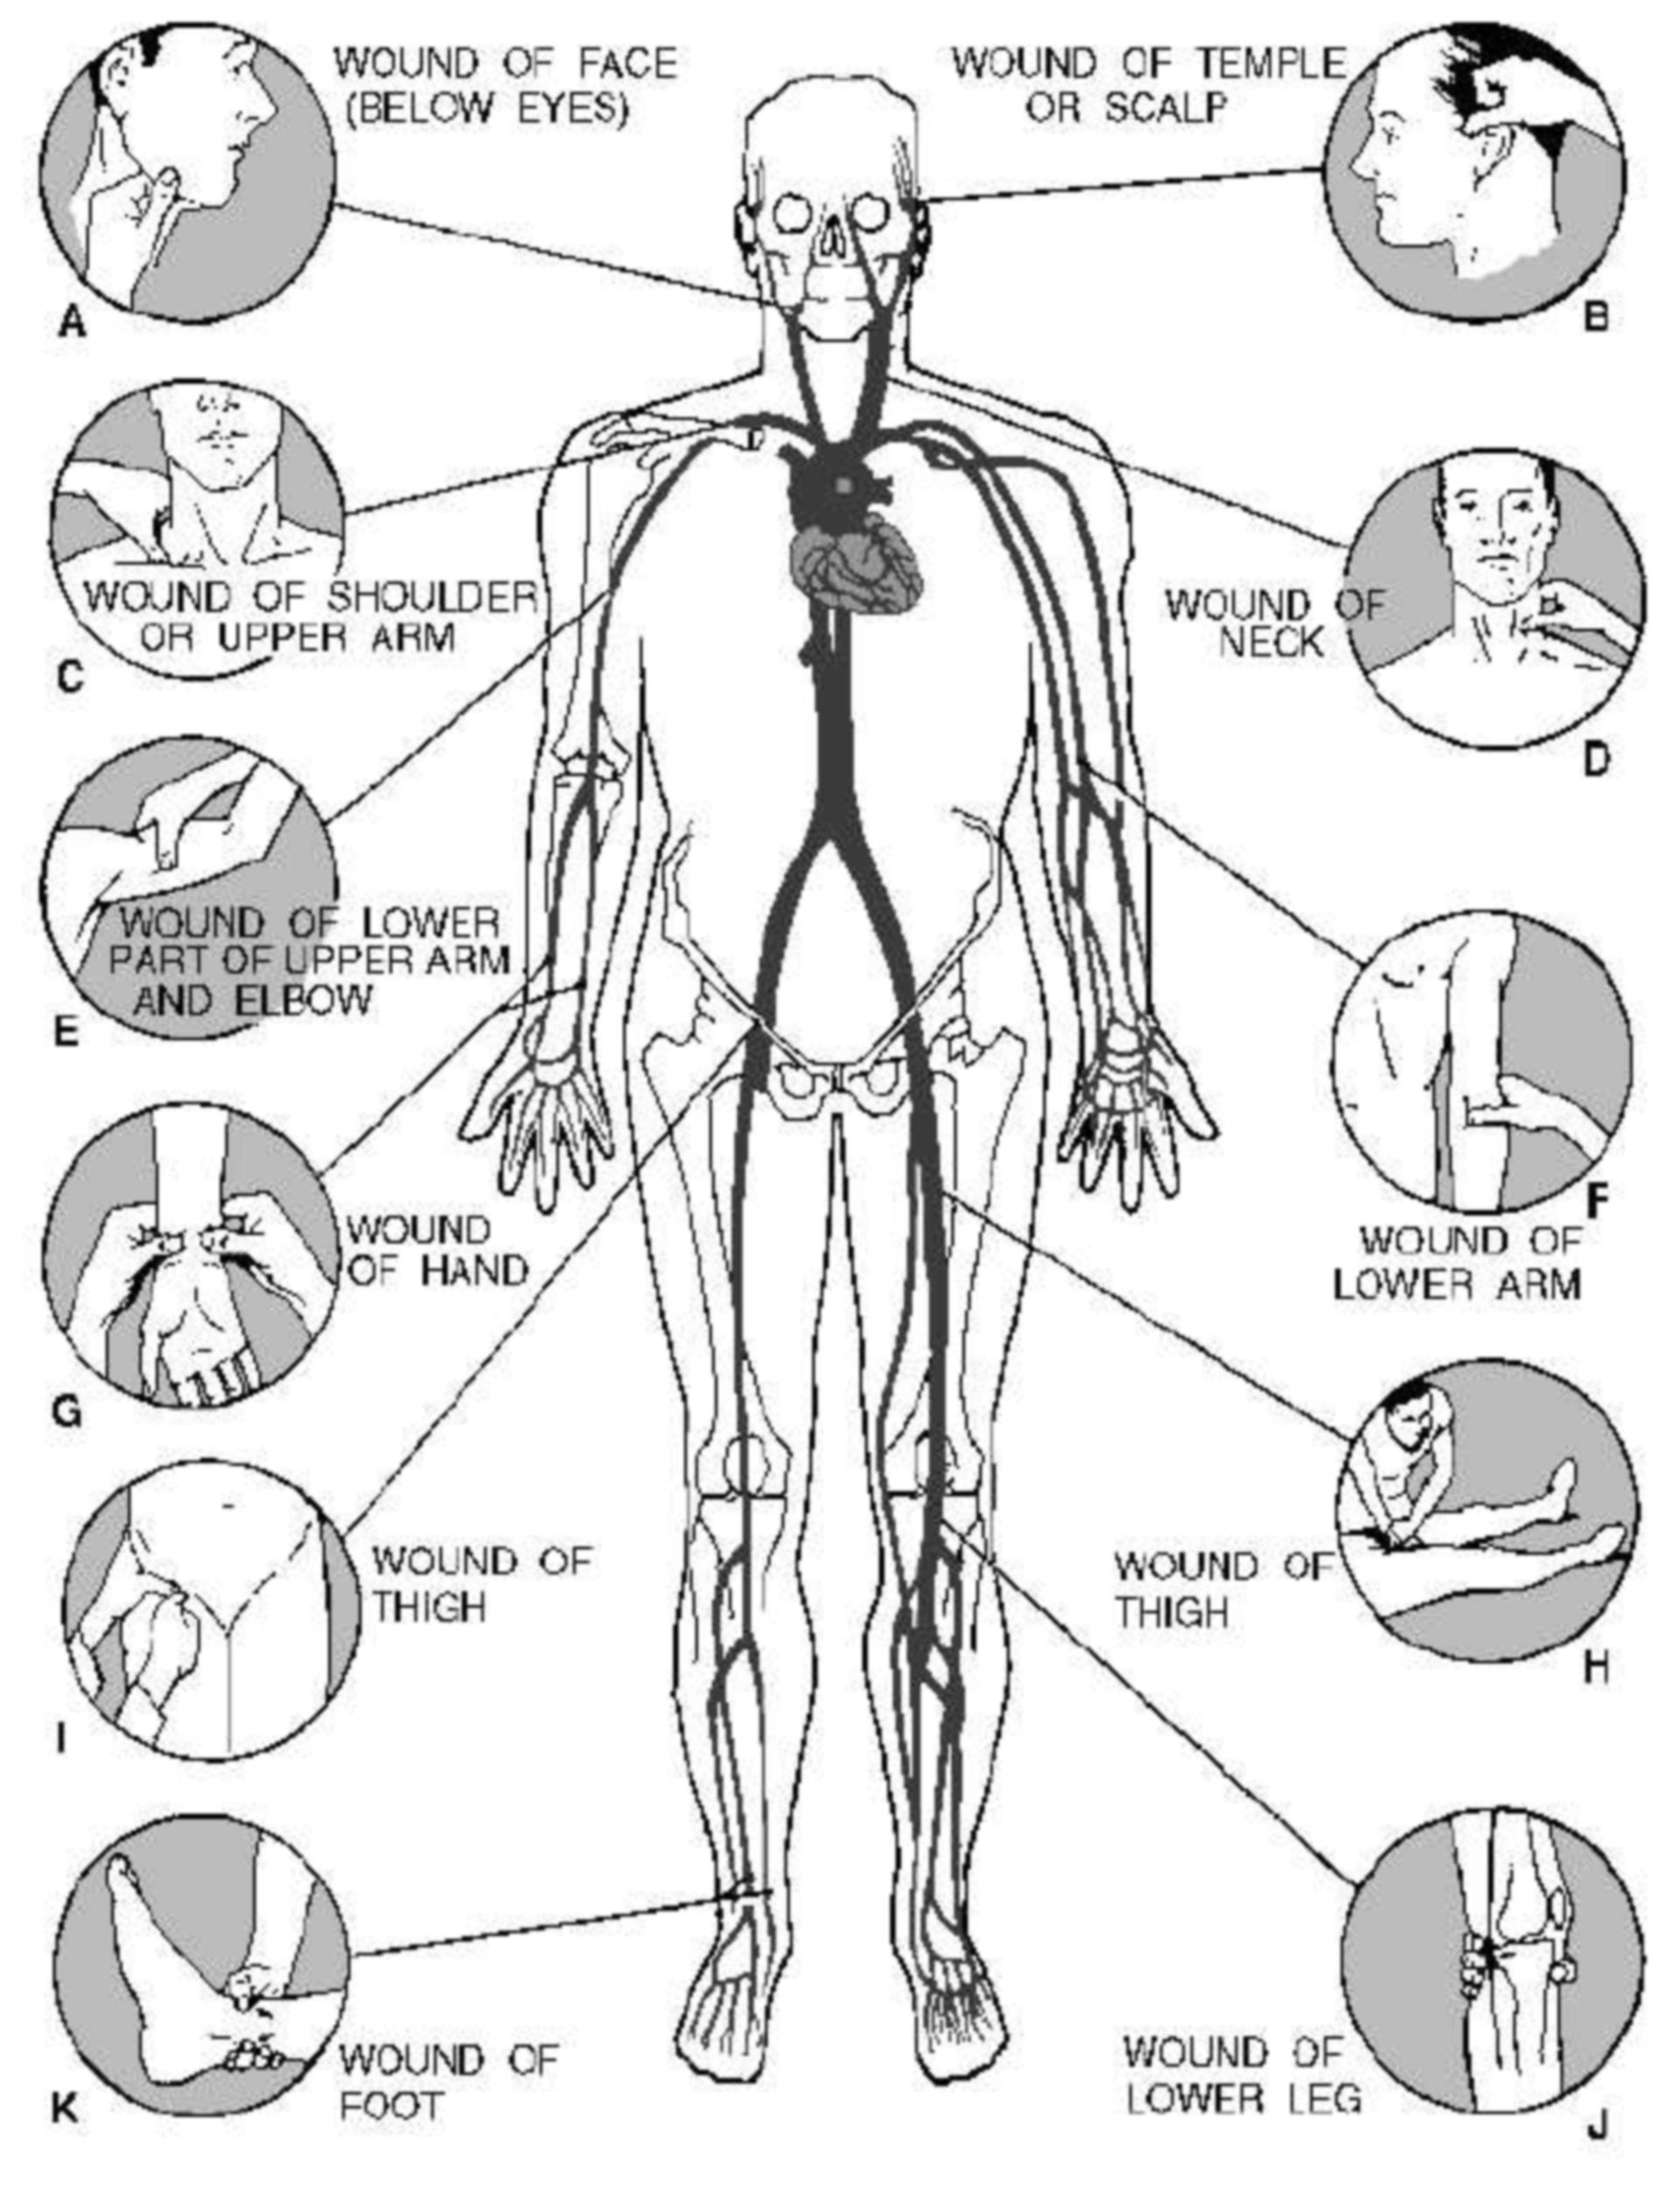 Diagram showing th location of the pressure points that can be used to control bleeding.